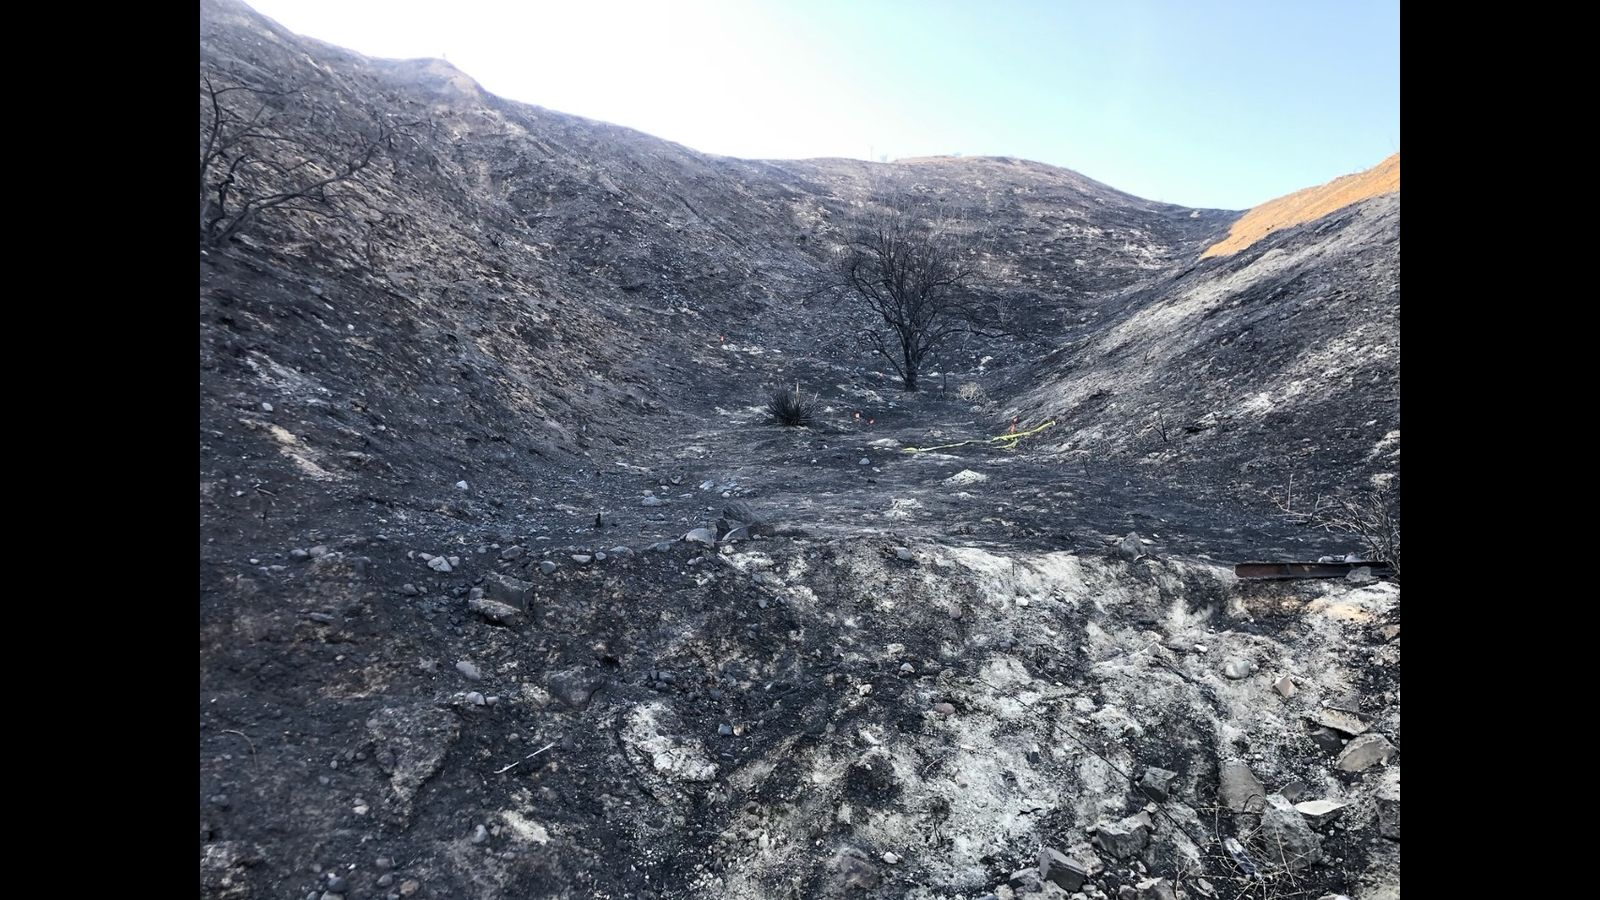 Human Remains Found In Burnt Area Near Tick Fire In Santa Clarita Not Related To Fire Authorities Say Fire Area Canyon Country California Wildfires